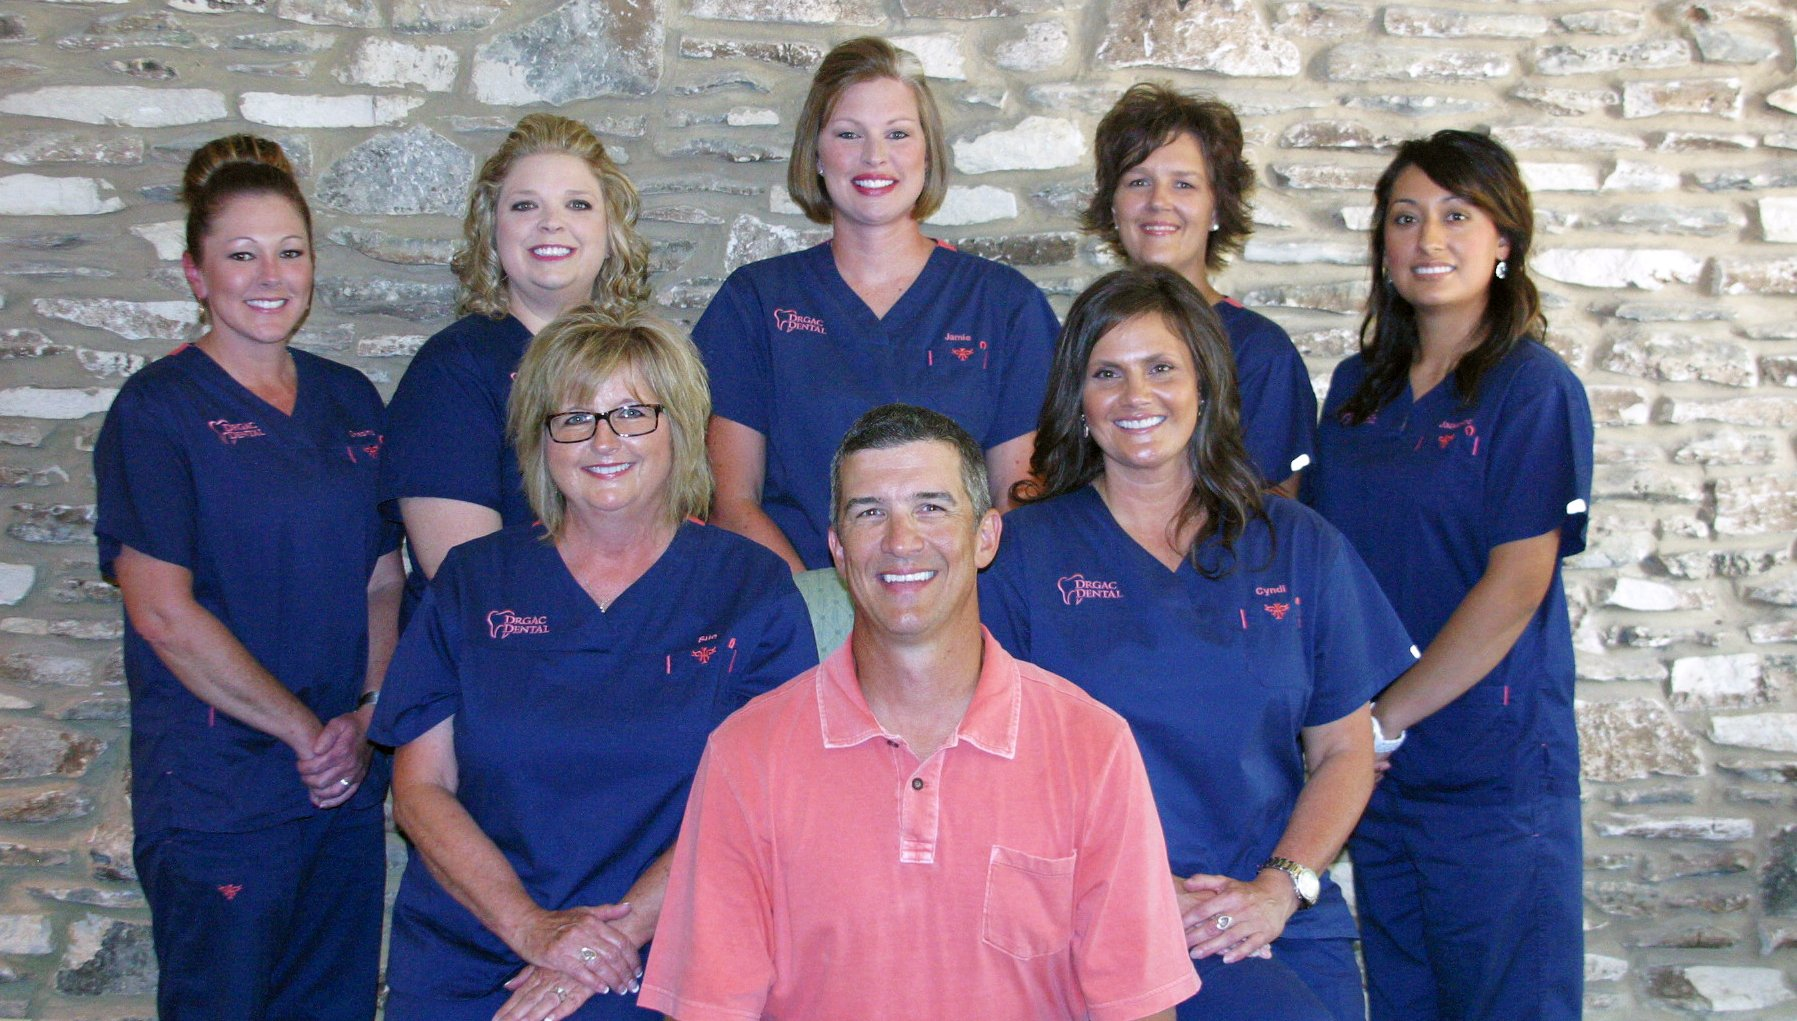 Our family dentist team in Caldwell